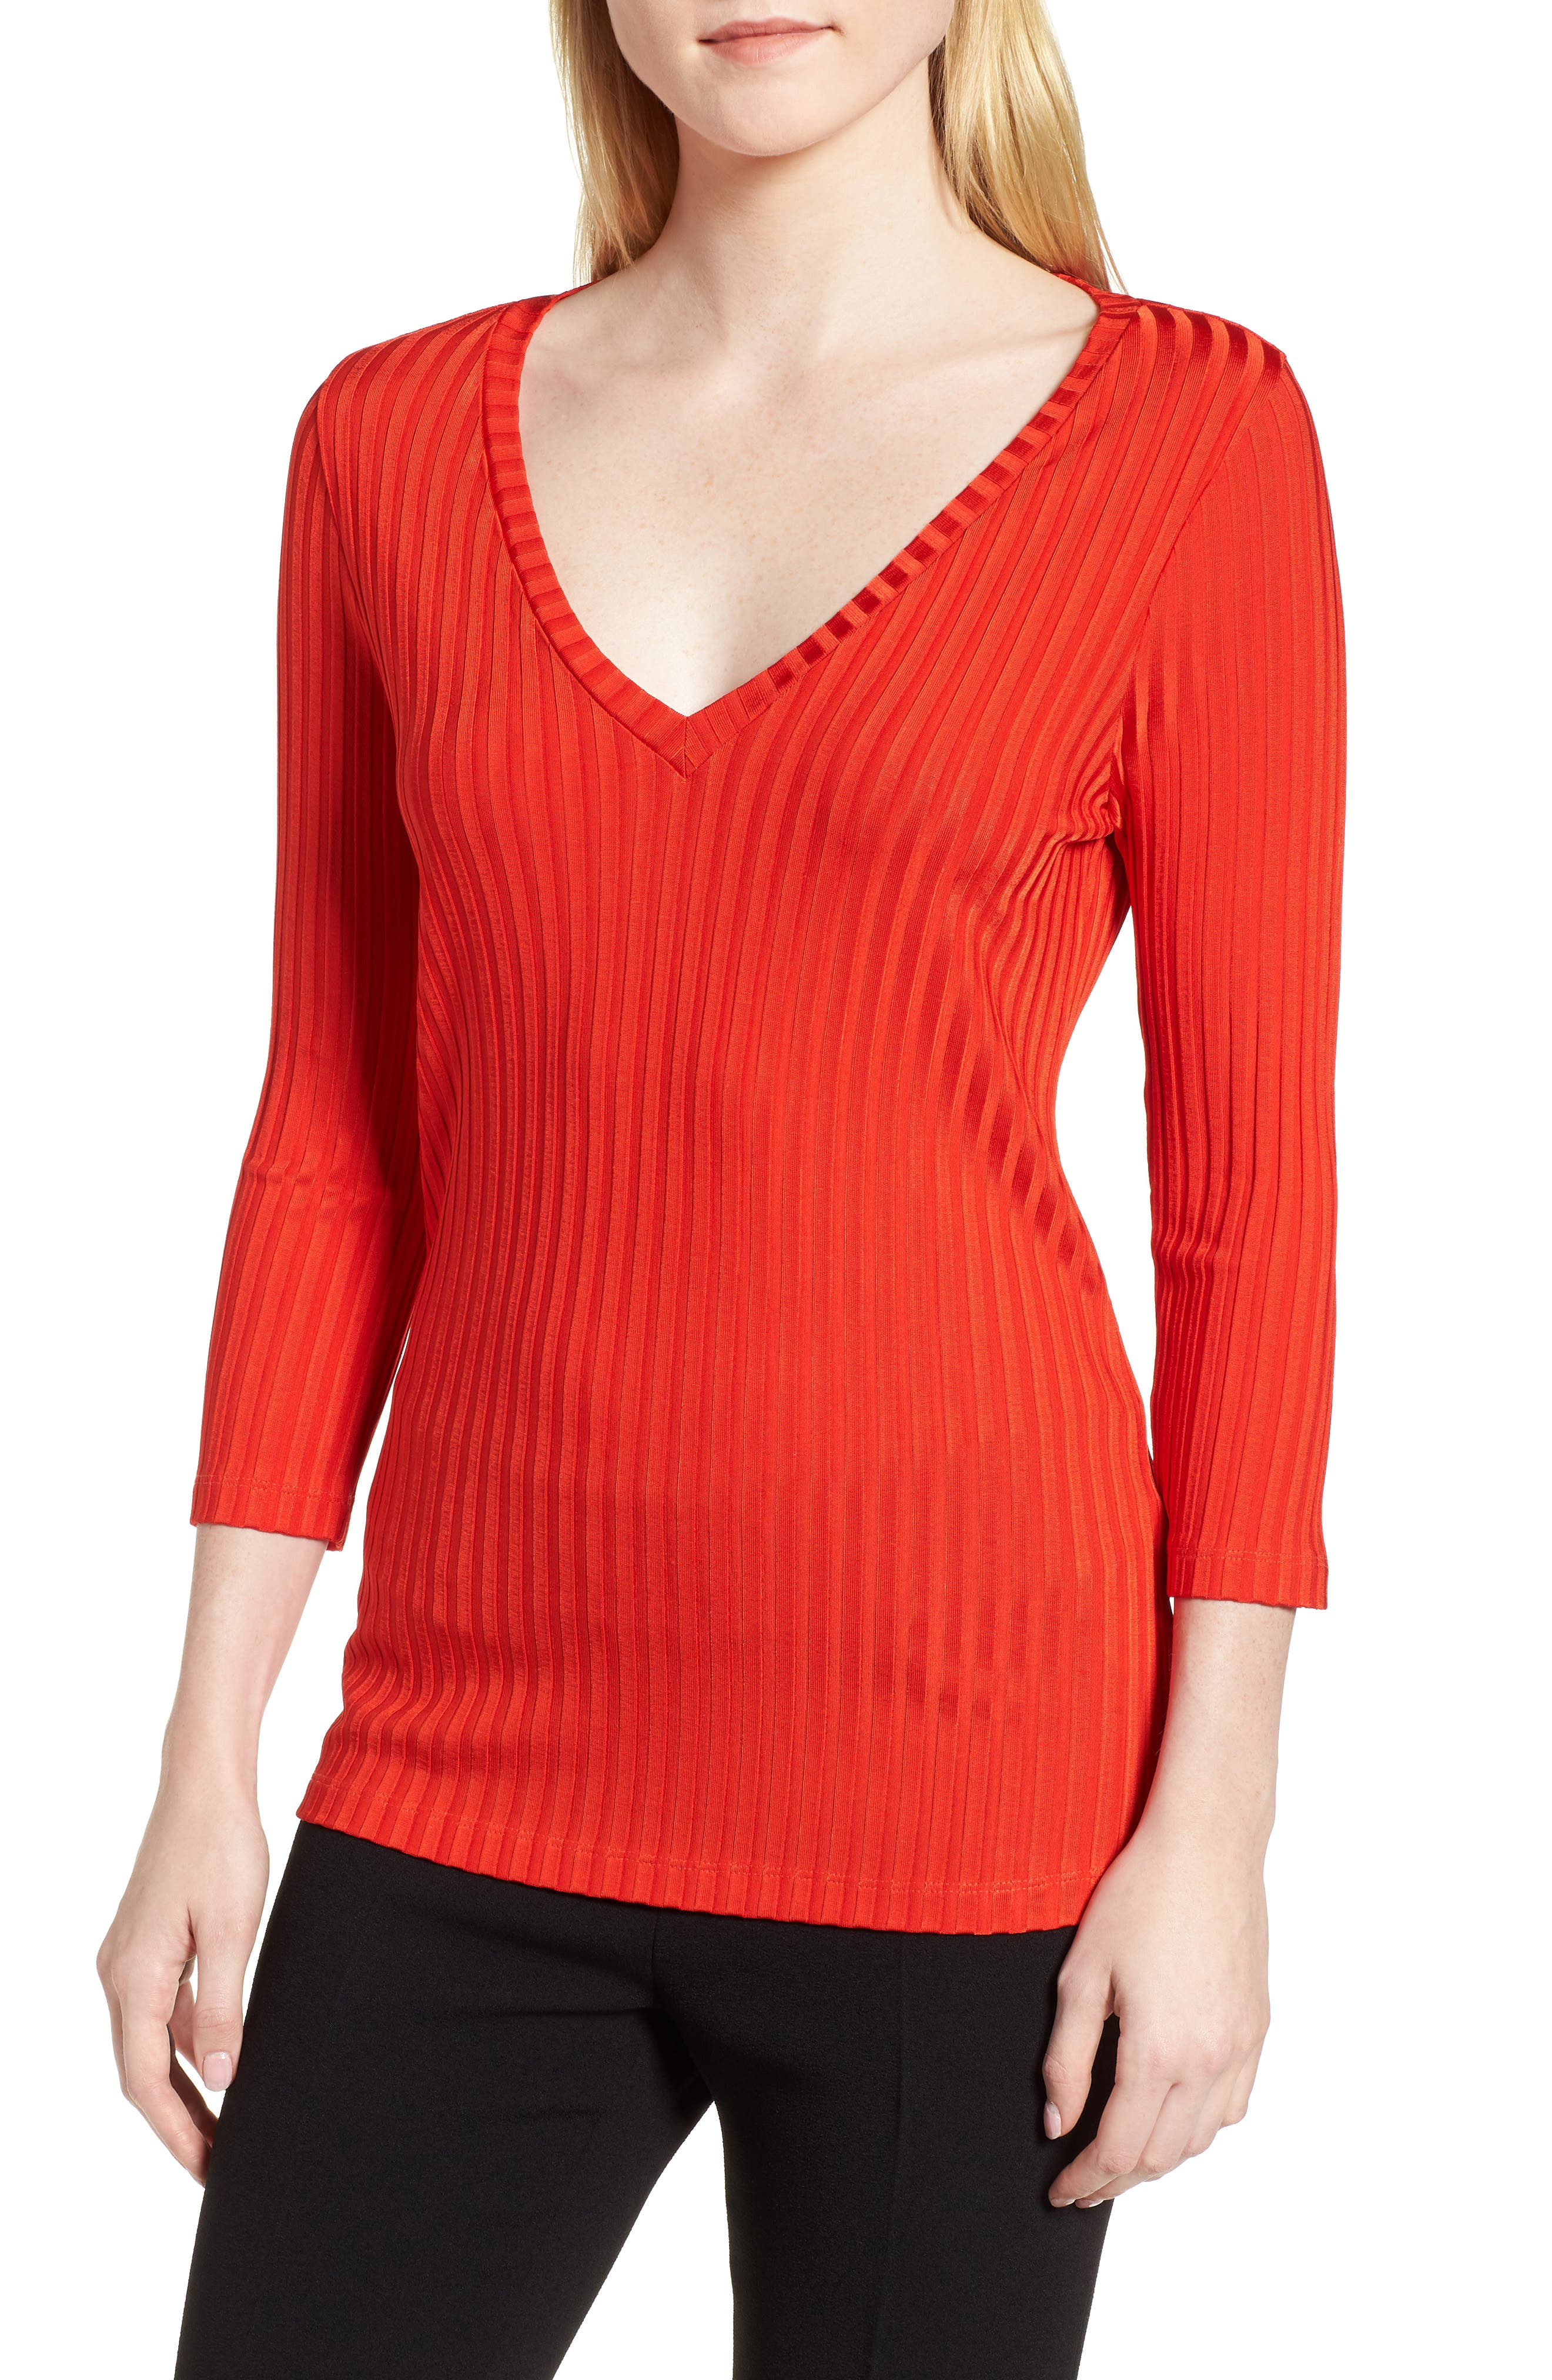 Etrica V-Neck Ribbed Top,                             Main thumbnail 1, color,